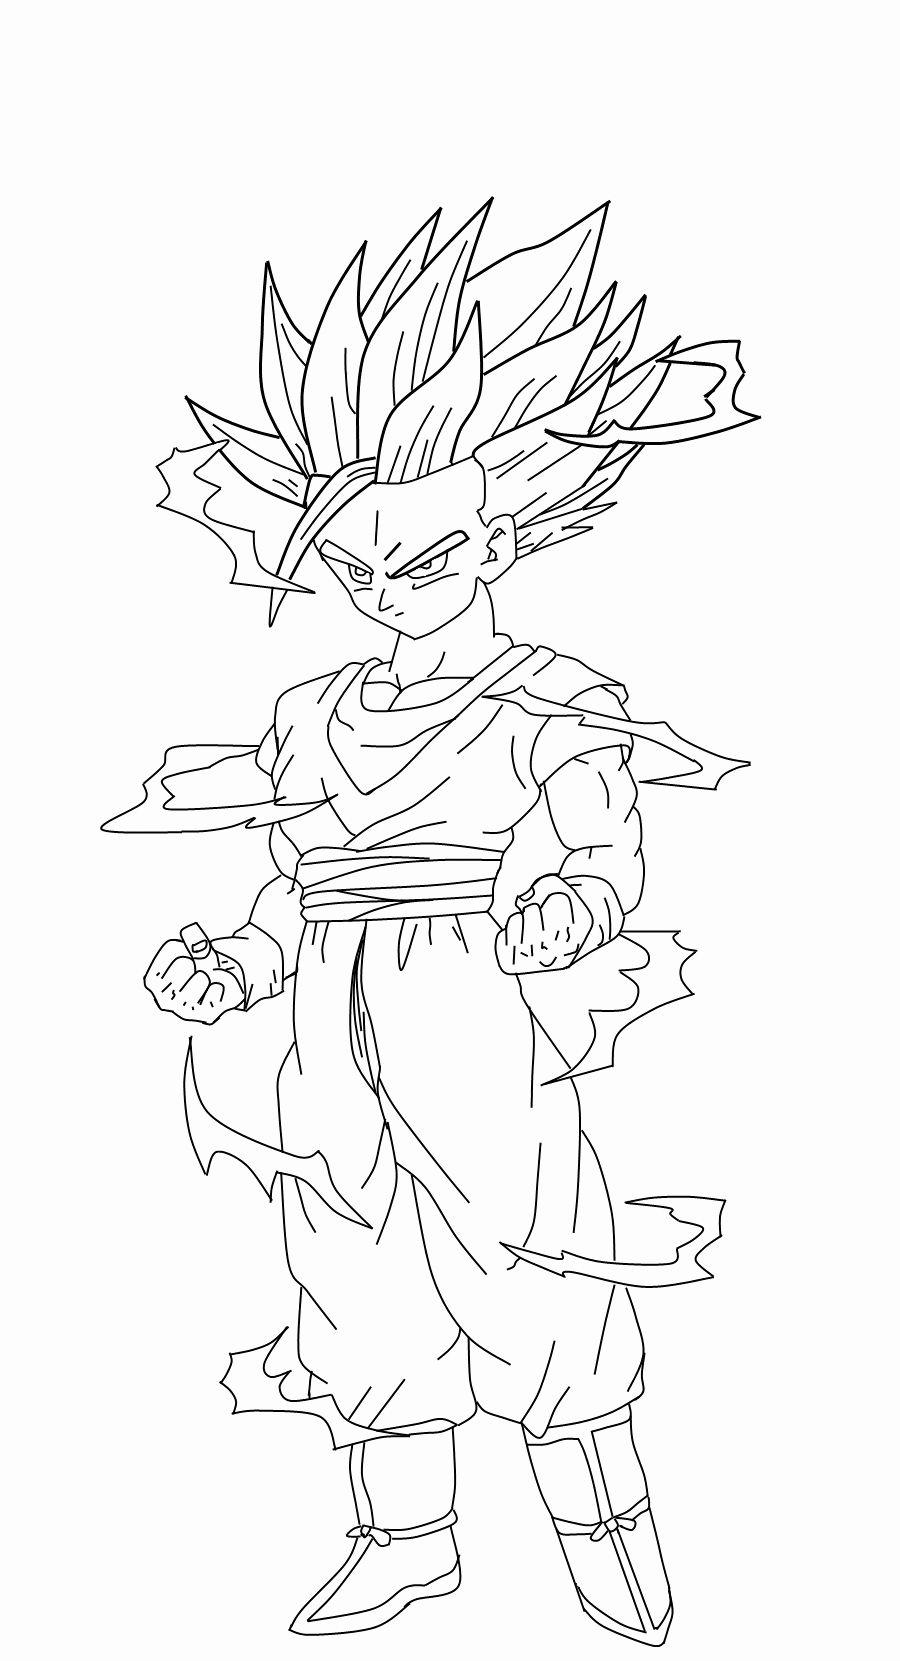 Dragon Ball Z Coloring Page Elegant Dragon Ball Z Goku Super Saiyan 2 Coloring Pages Coloring Home Dragon Ball Artwork Dragon Ball Image Dragon Ball Art